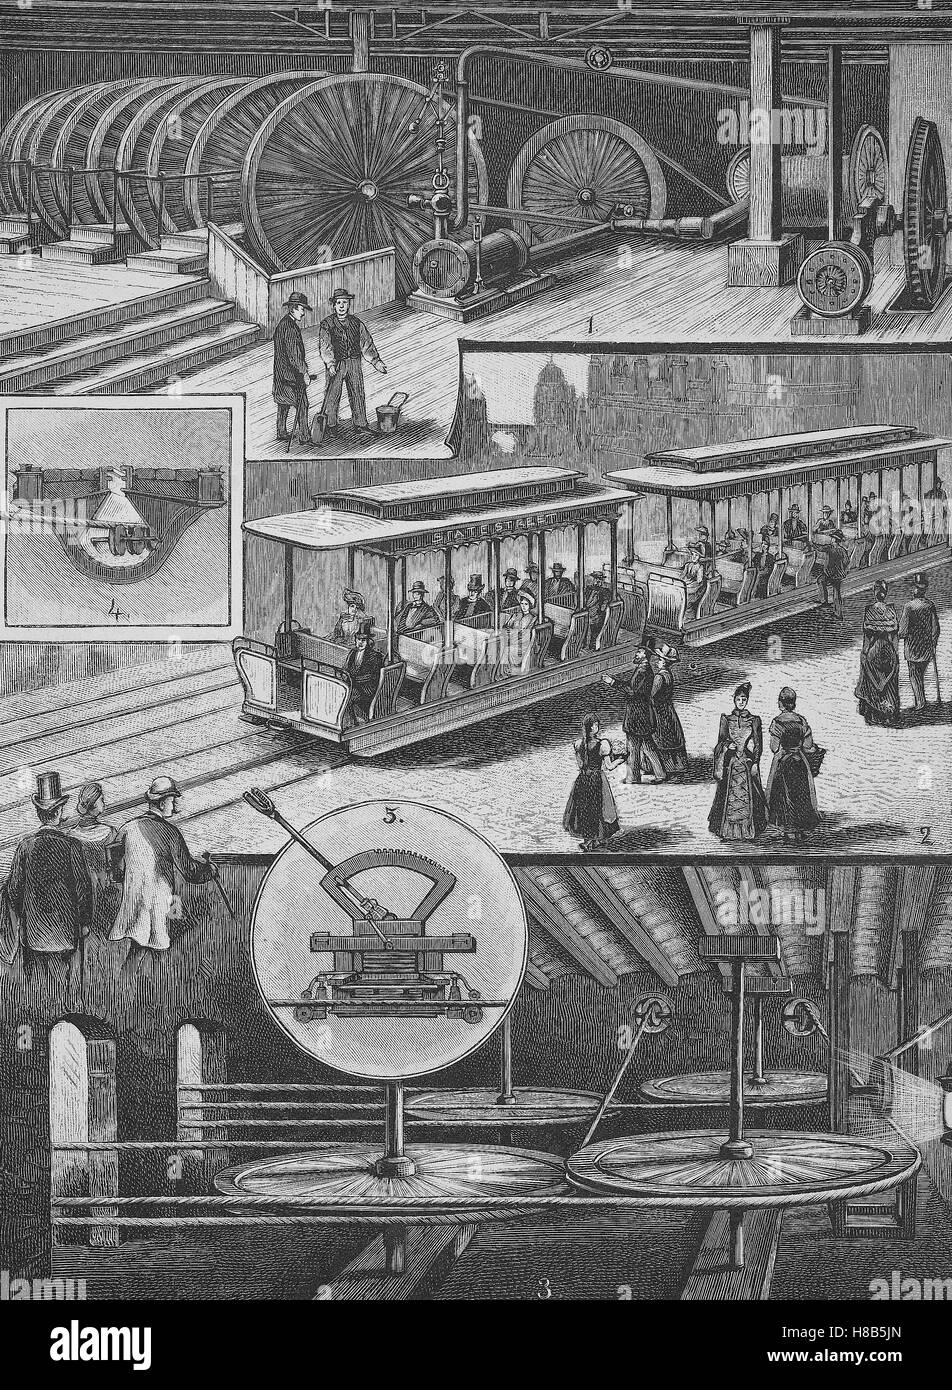 The cable tram in Chicago, Woodcut from 1892 - Stock Image